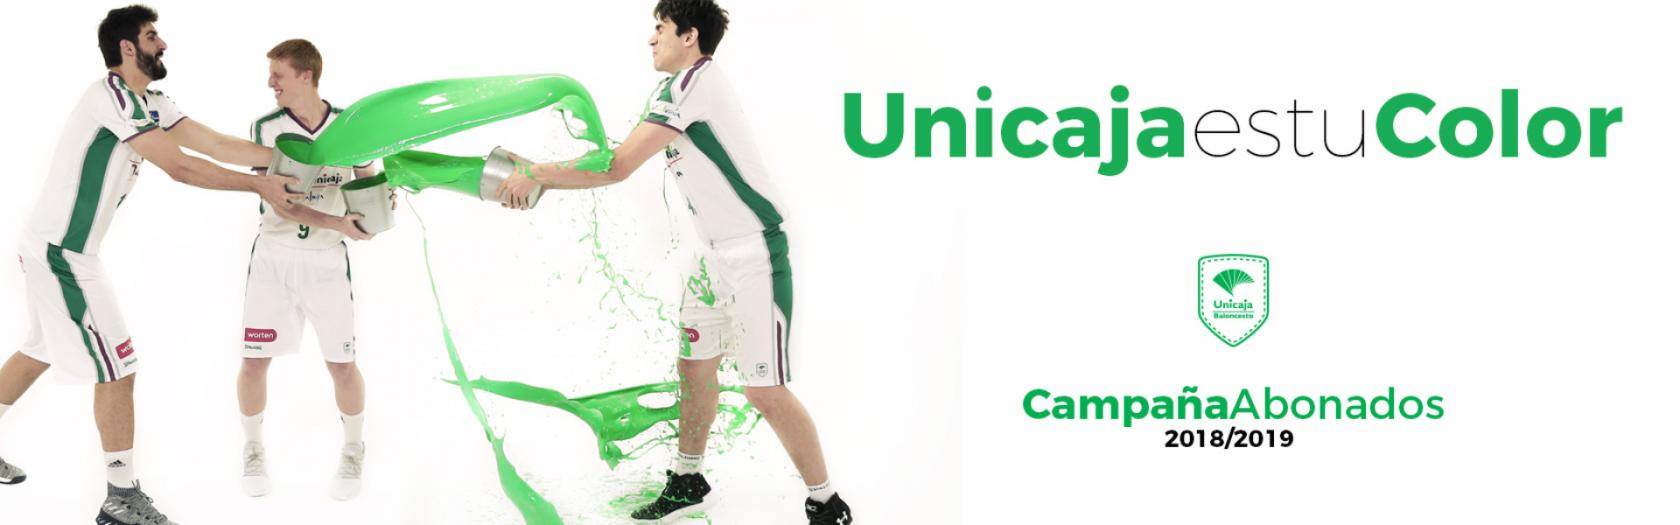 Unicaja is your color. Get your season ticket 18/19